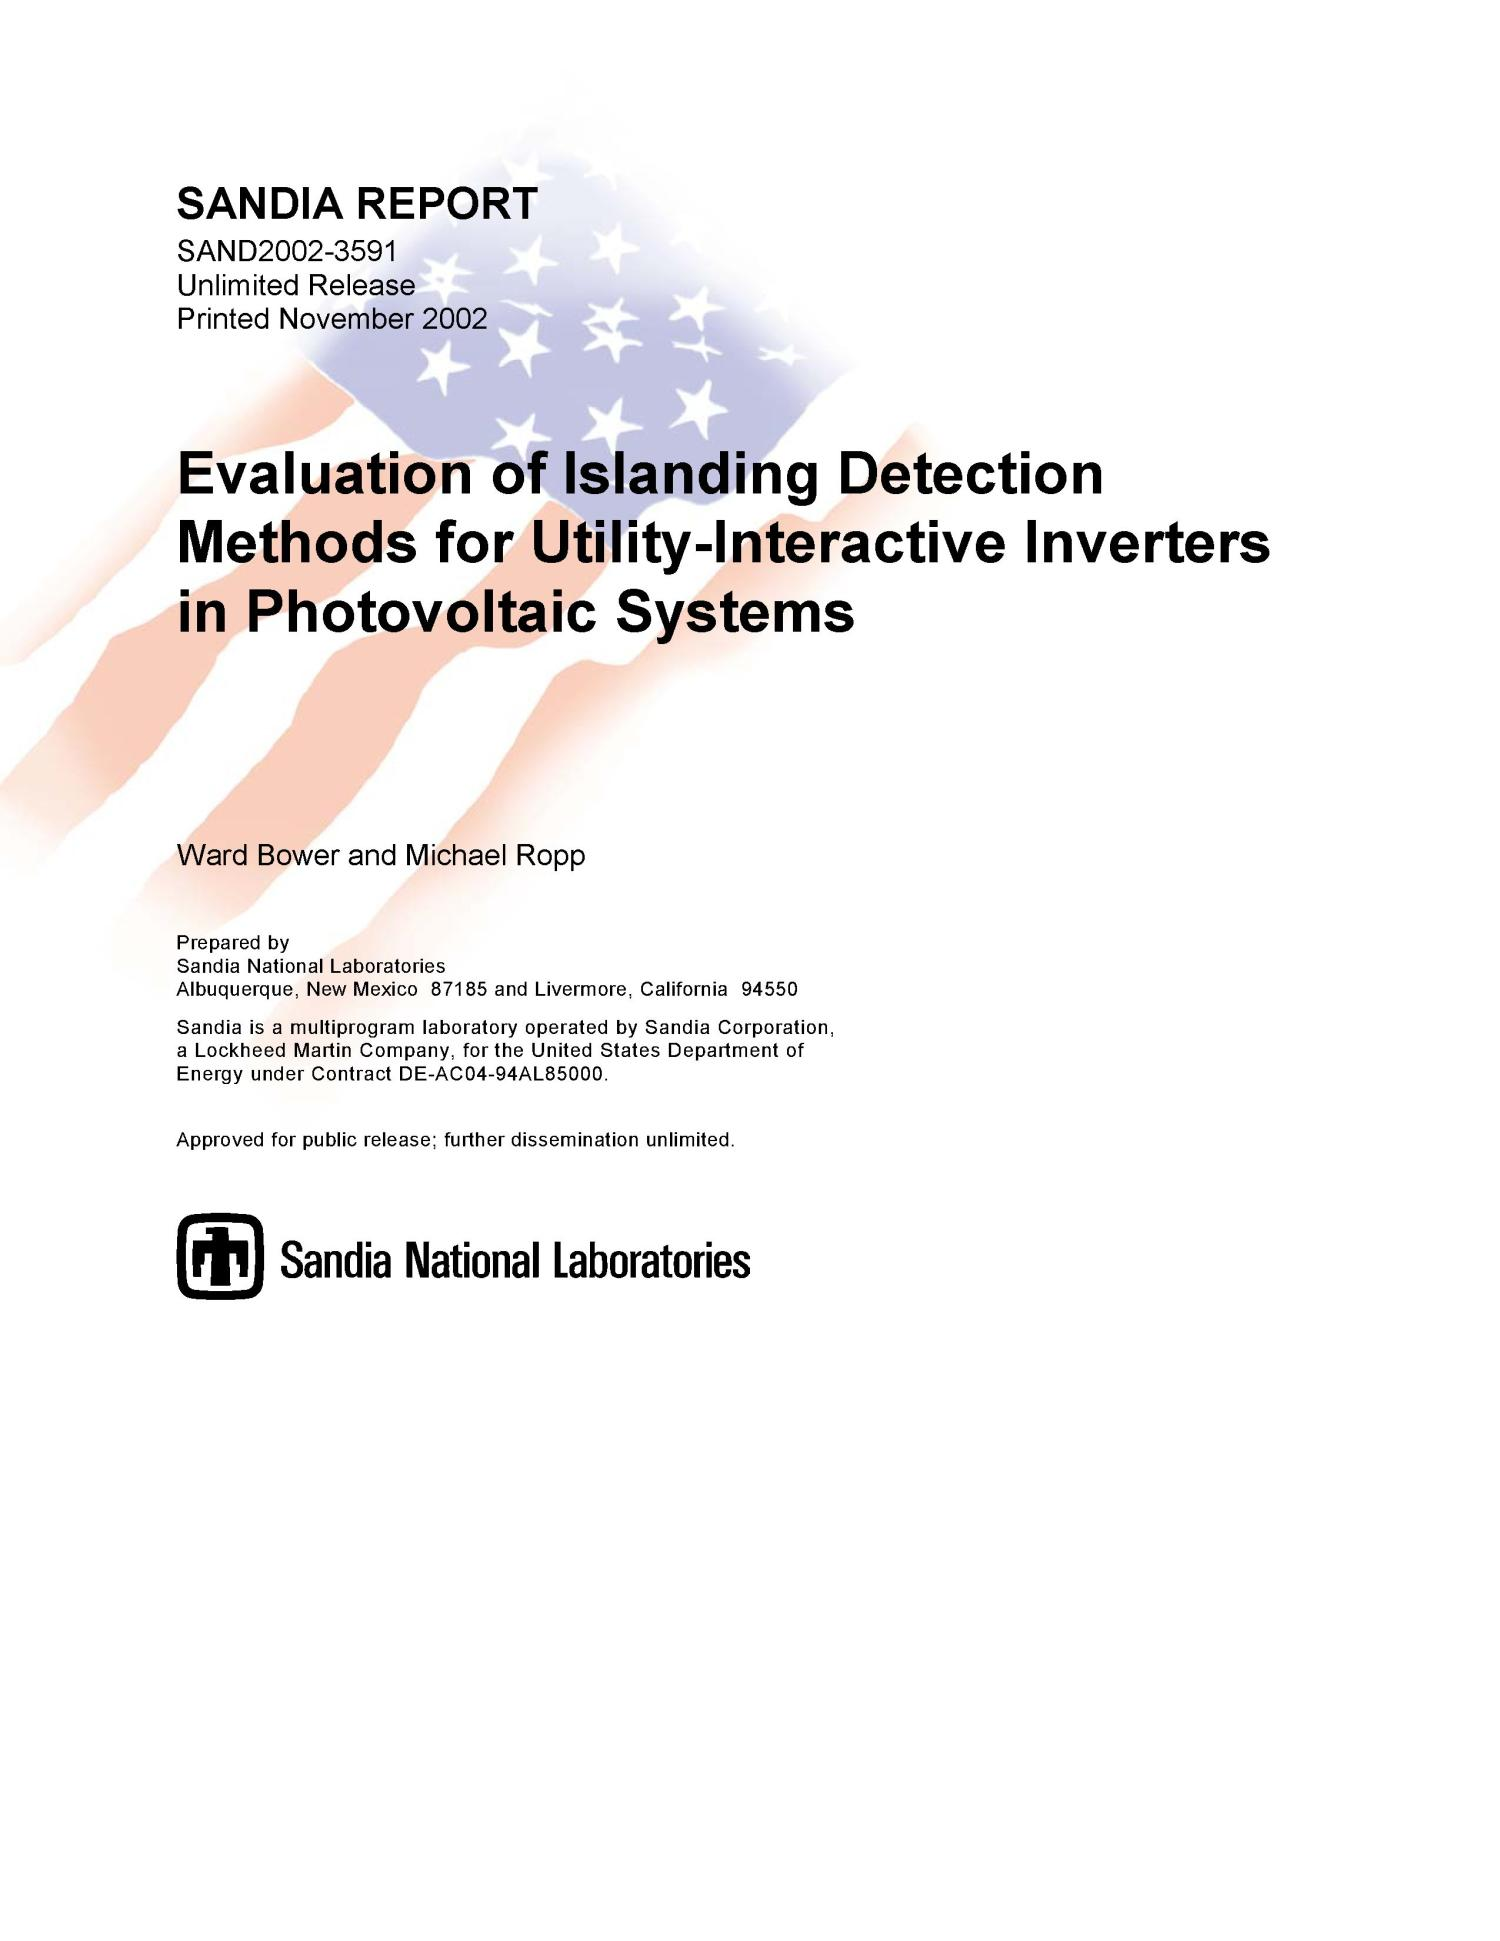 Evaluation of Islanding Detection Methods for Utility-Interactive Inverters in Photovoltaic Systems                                                                                                      [Sequence #]: 1 of 60